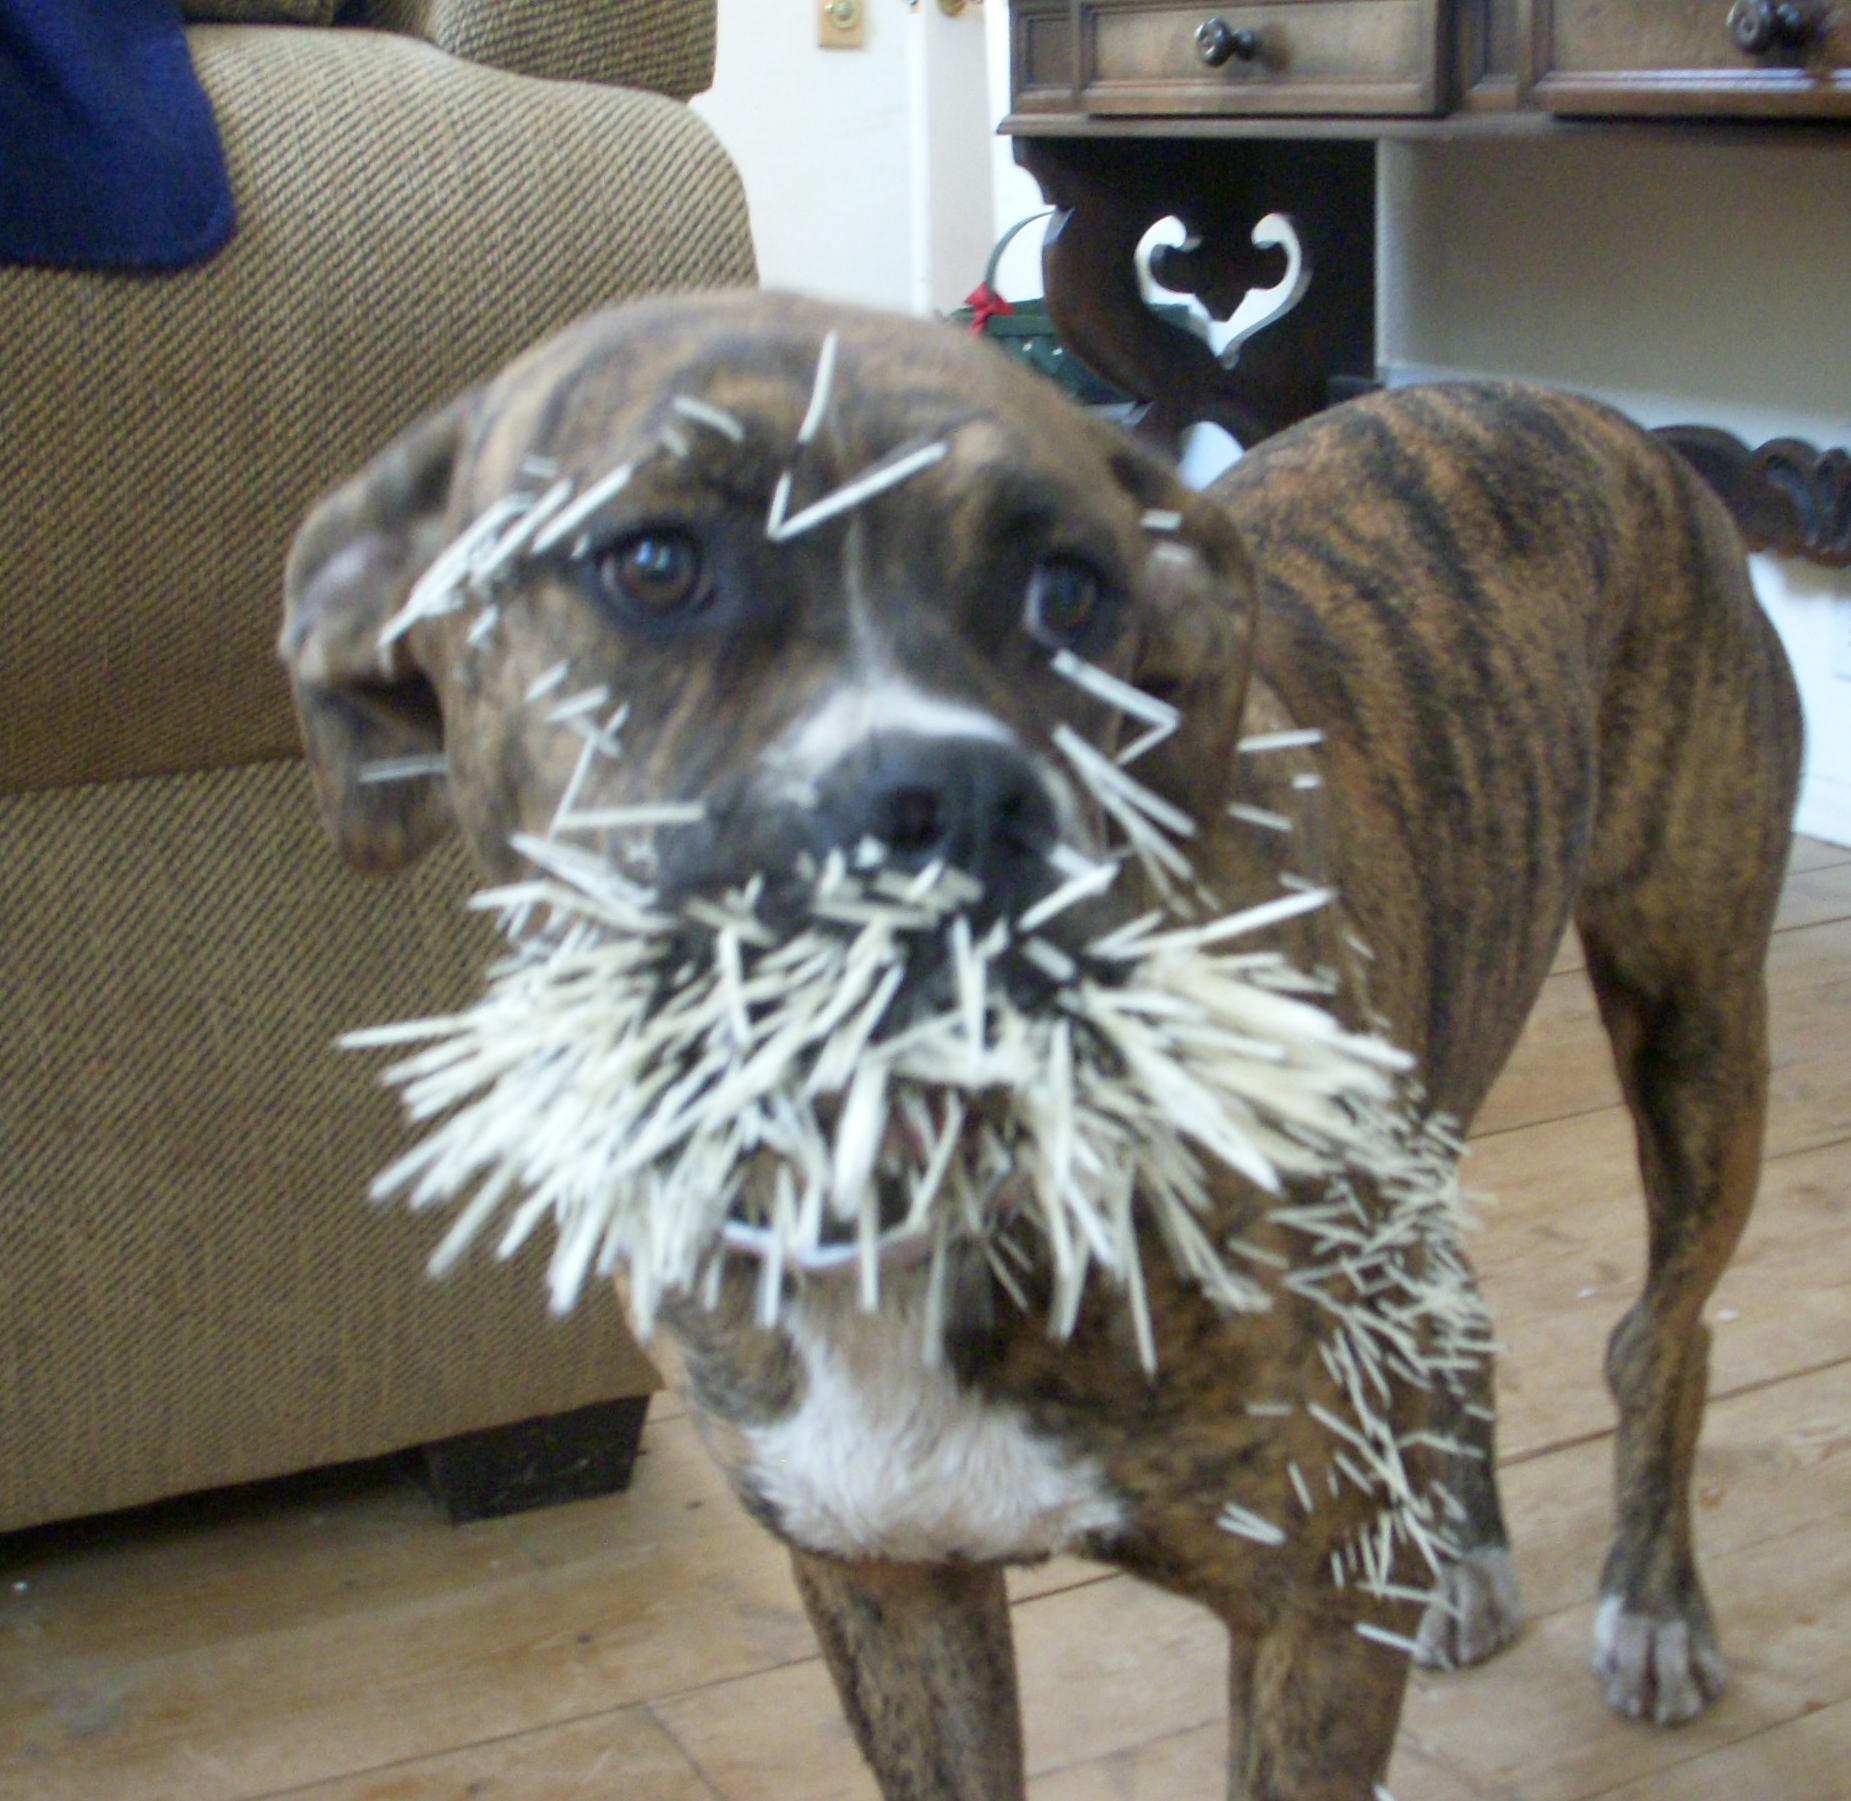 Dog Quilled By A Porcupine